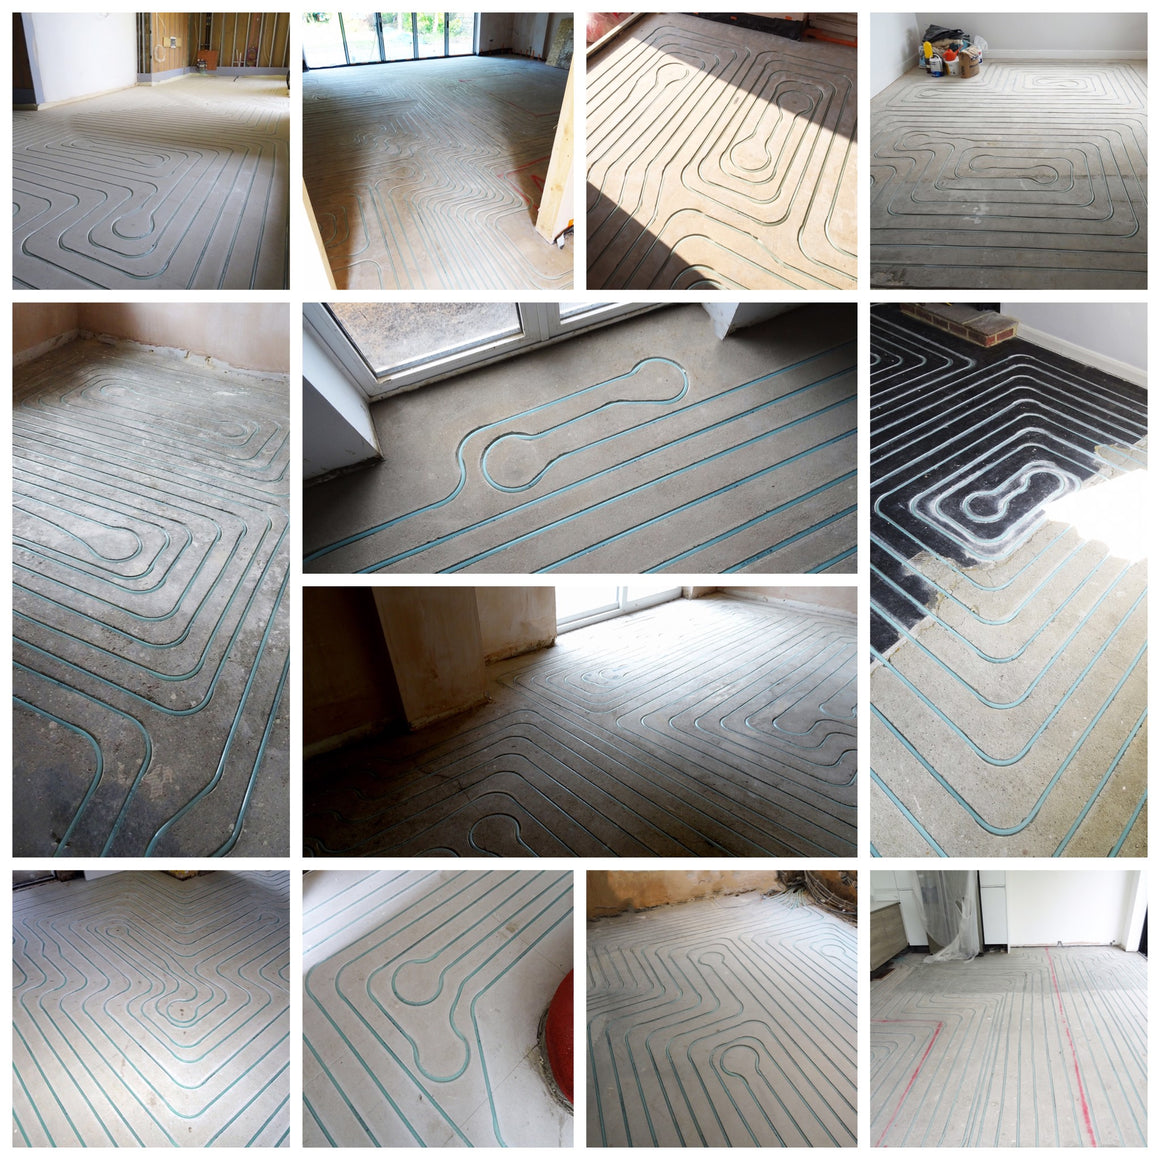 Underfloor Heating - Below Ground